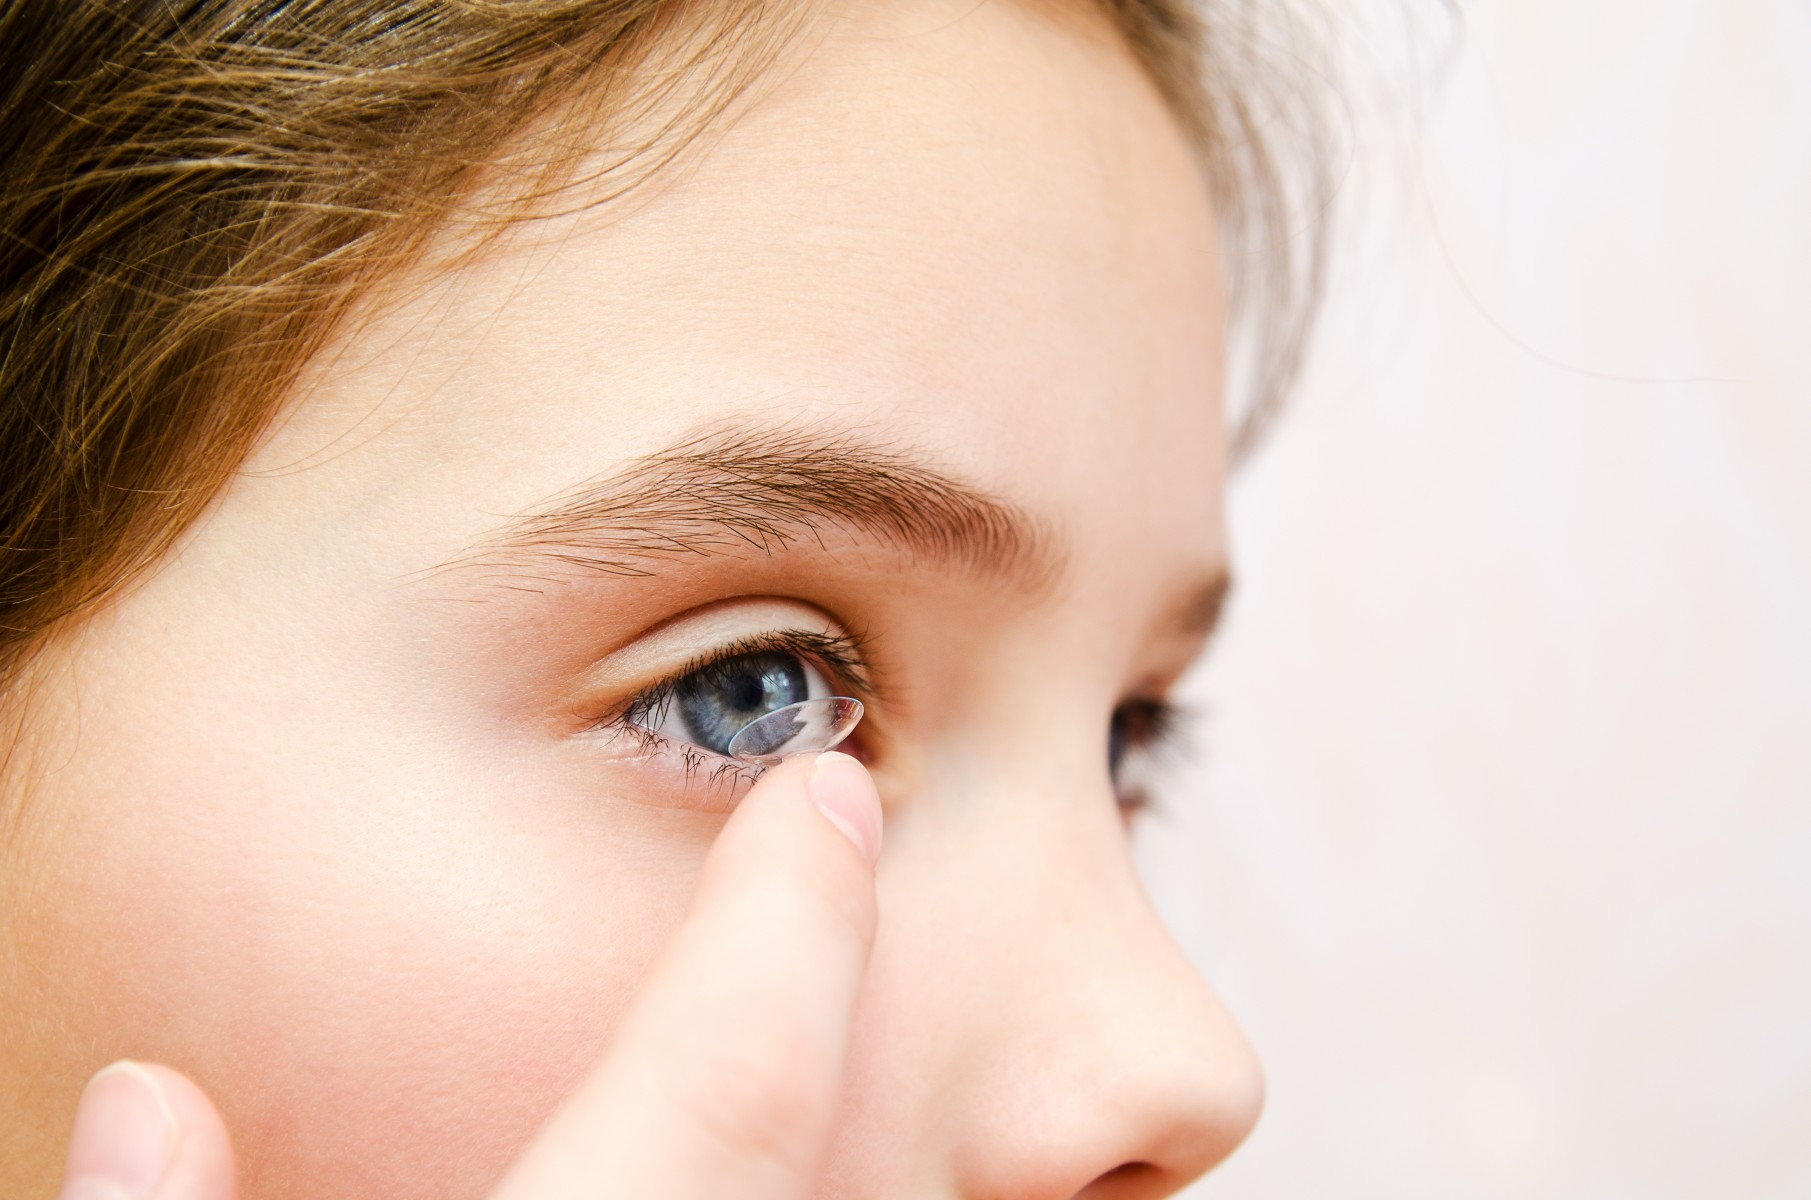 Jeffrey Walline has been studying contact lens use in children for years and has found that in addition to the vision benefits, contact lenses also improve kids' self-esteem.